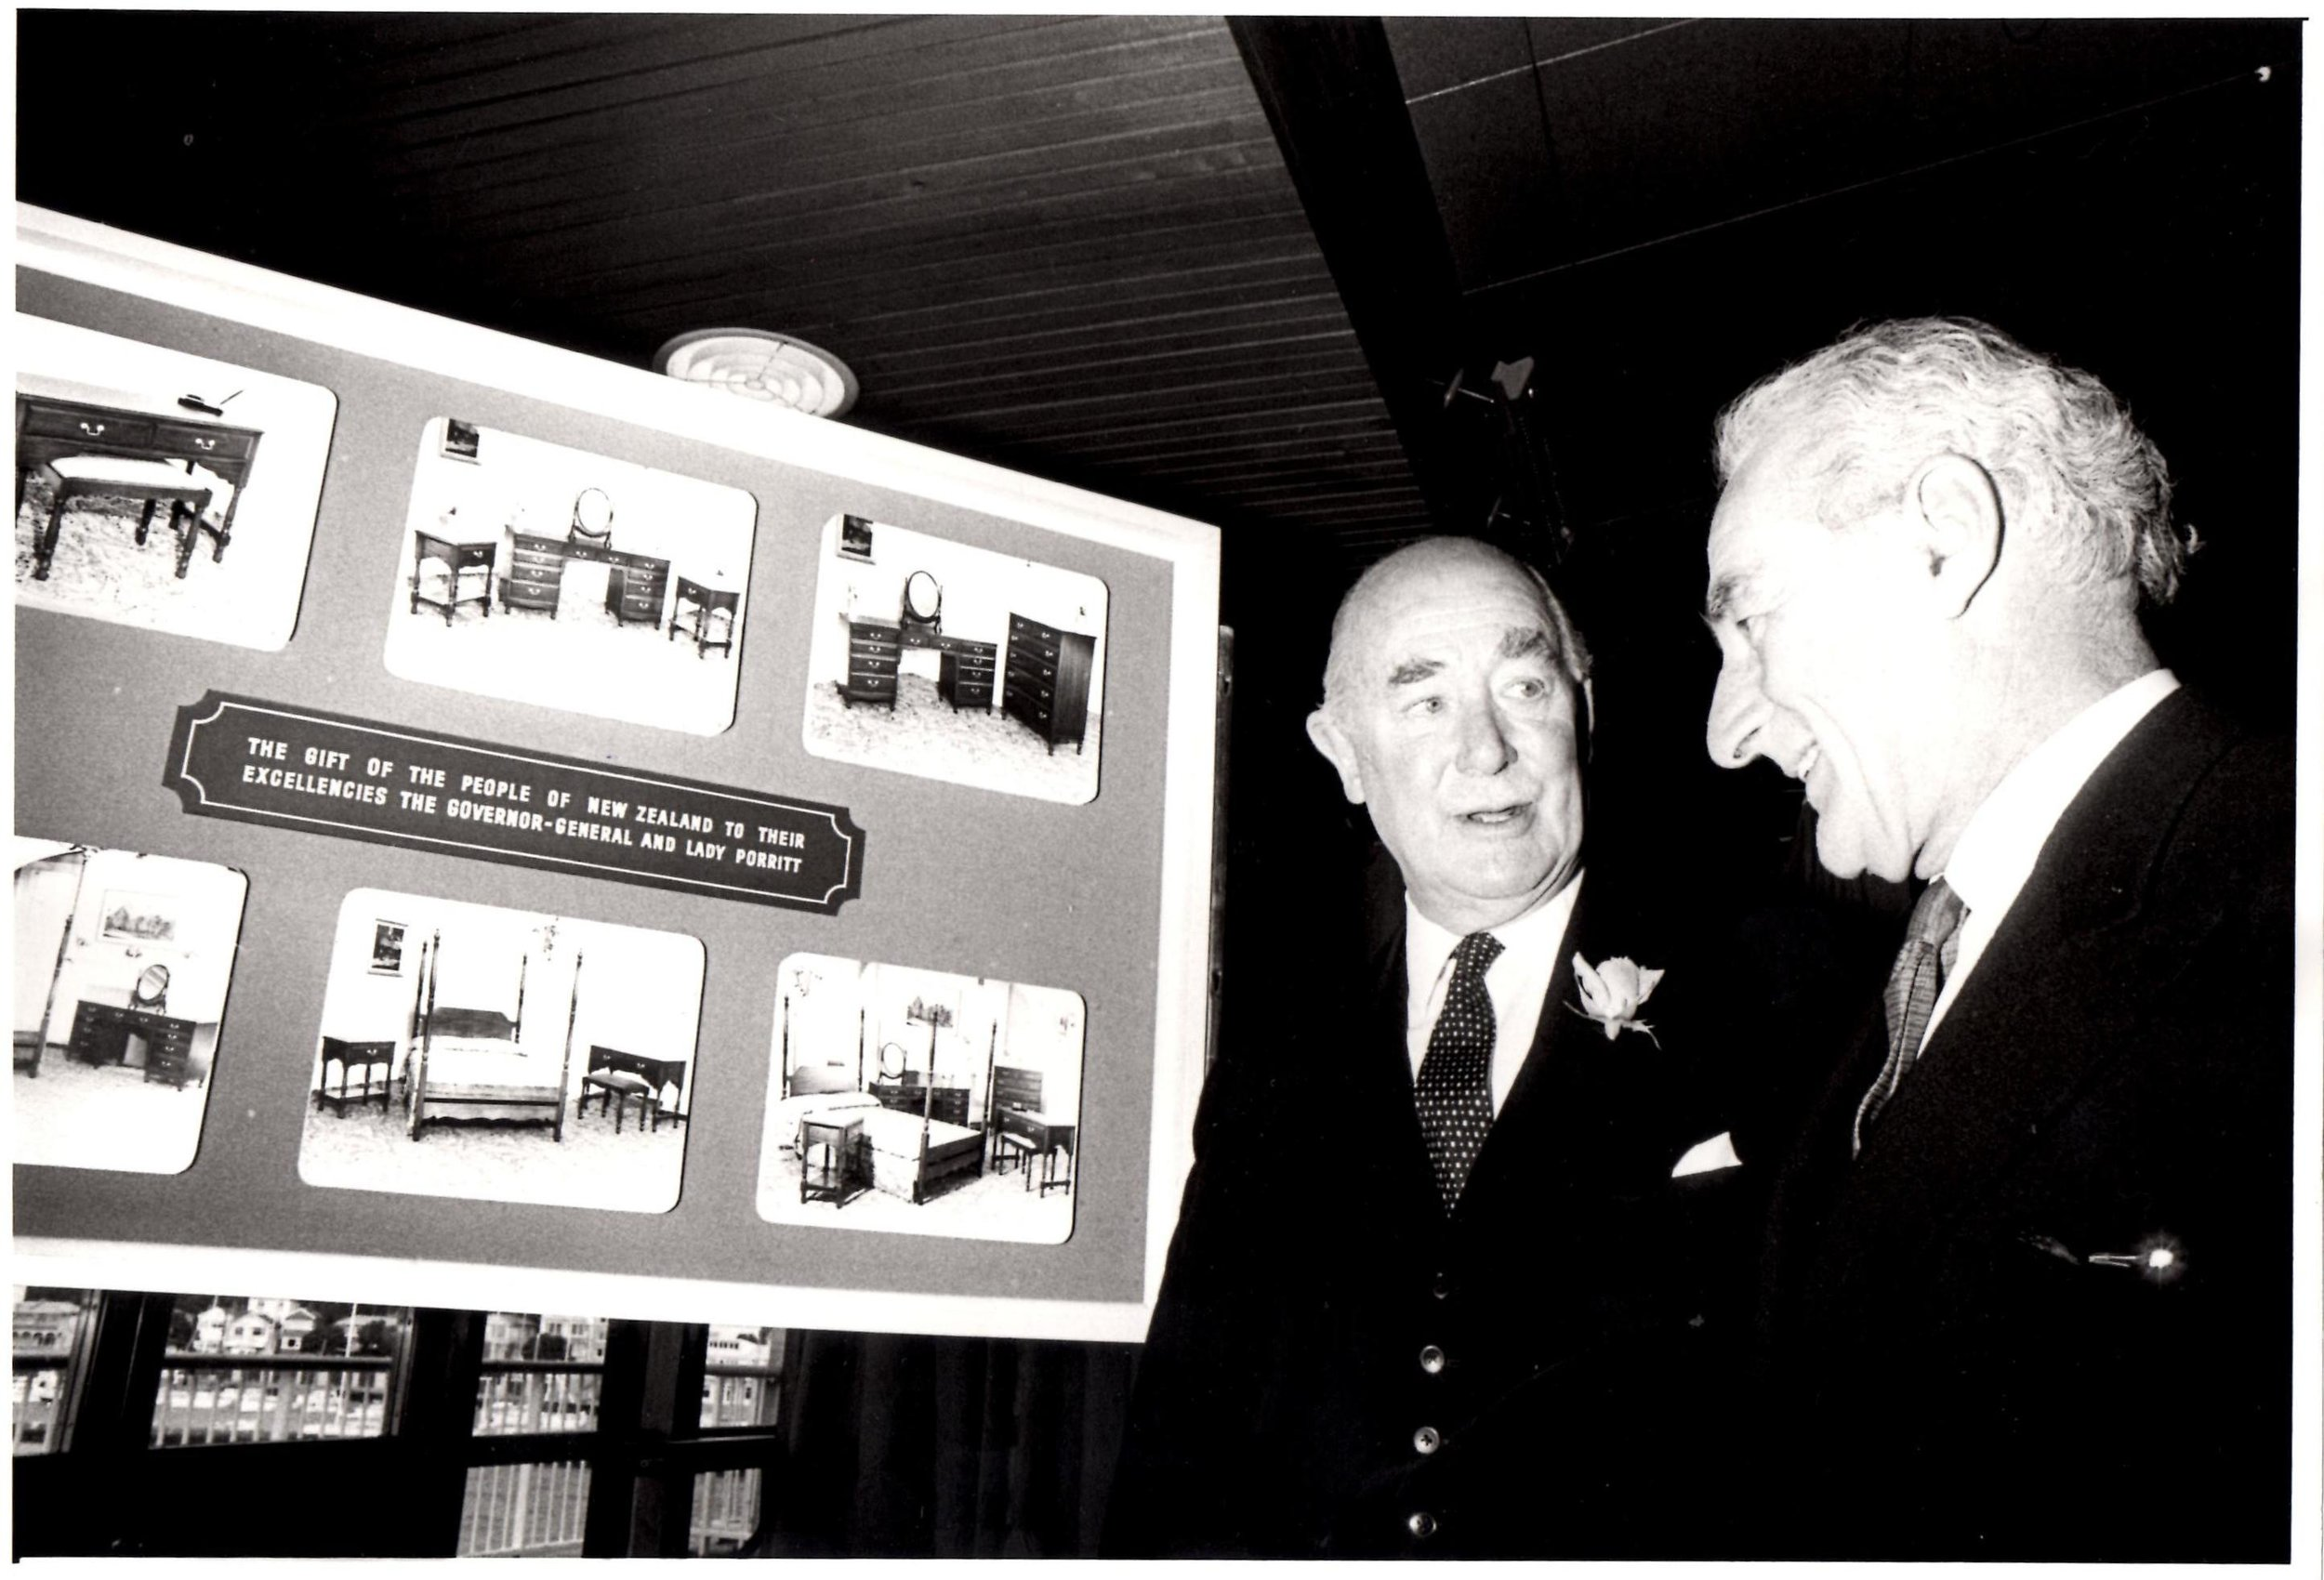 1972, NZ Governor General Porritt with PM Jack Marshall